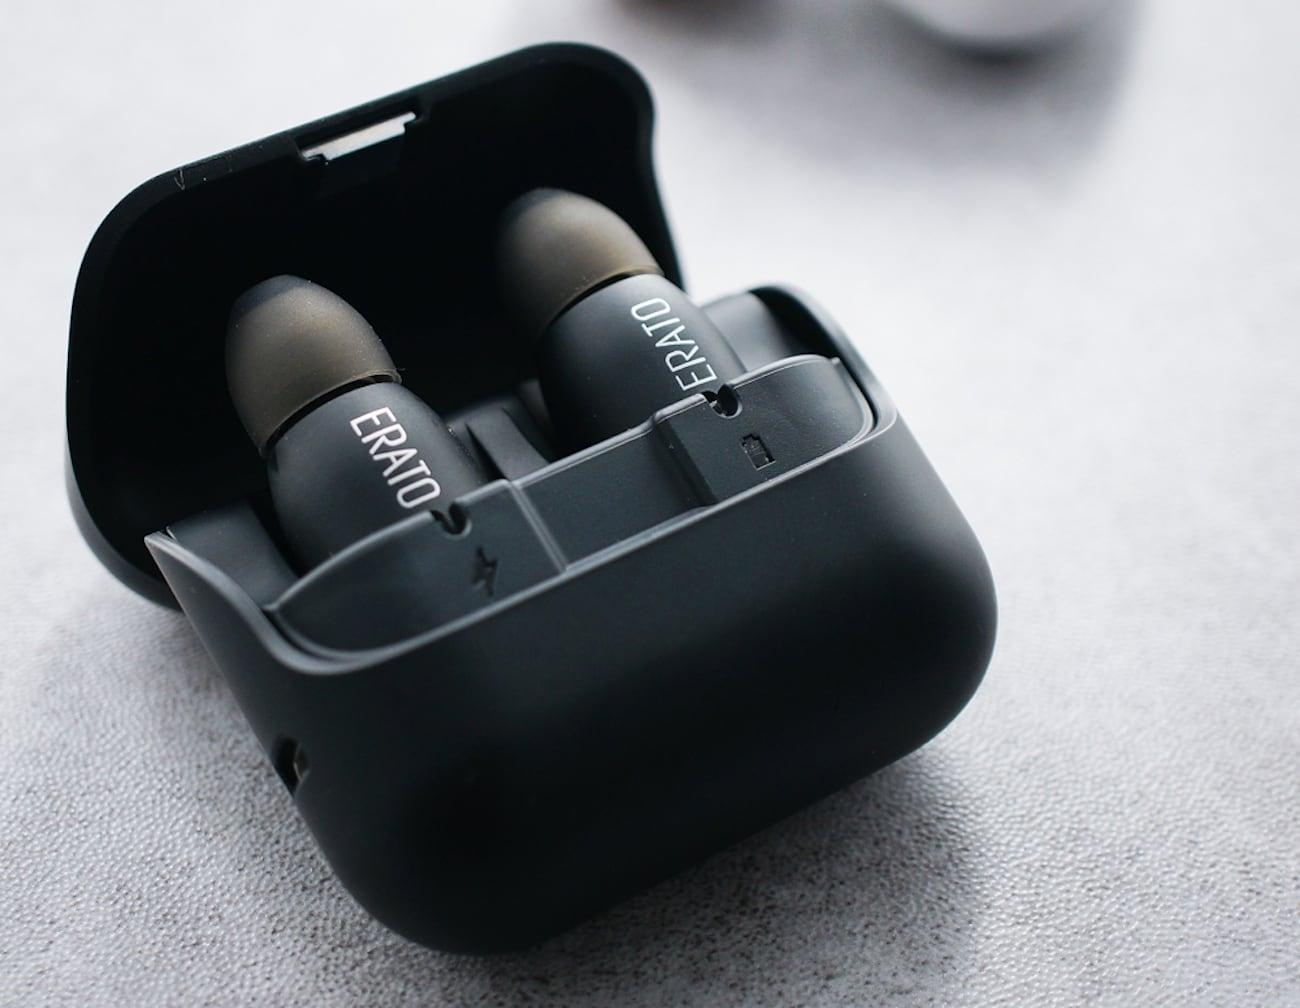 Erato Verse Wireless Ergonomic Earbuds